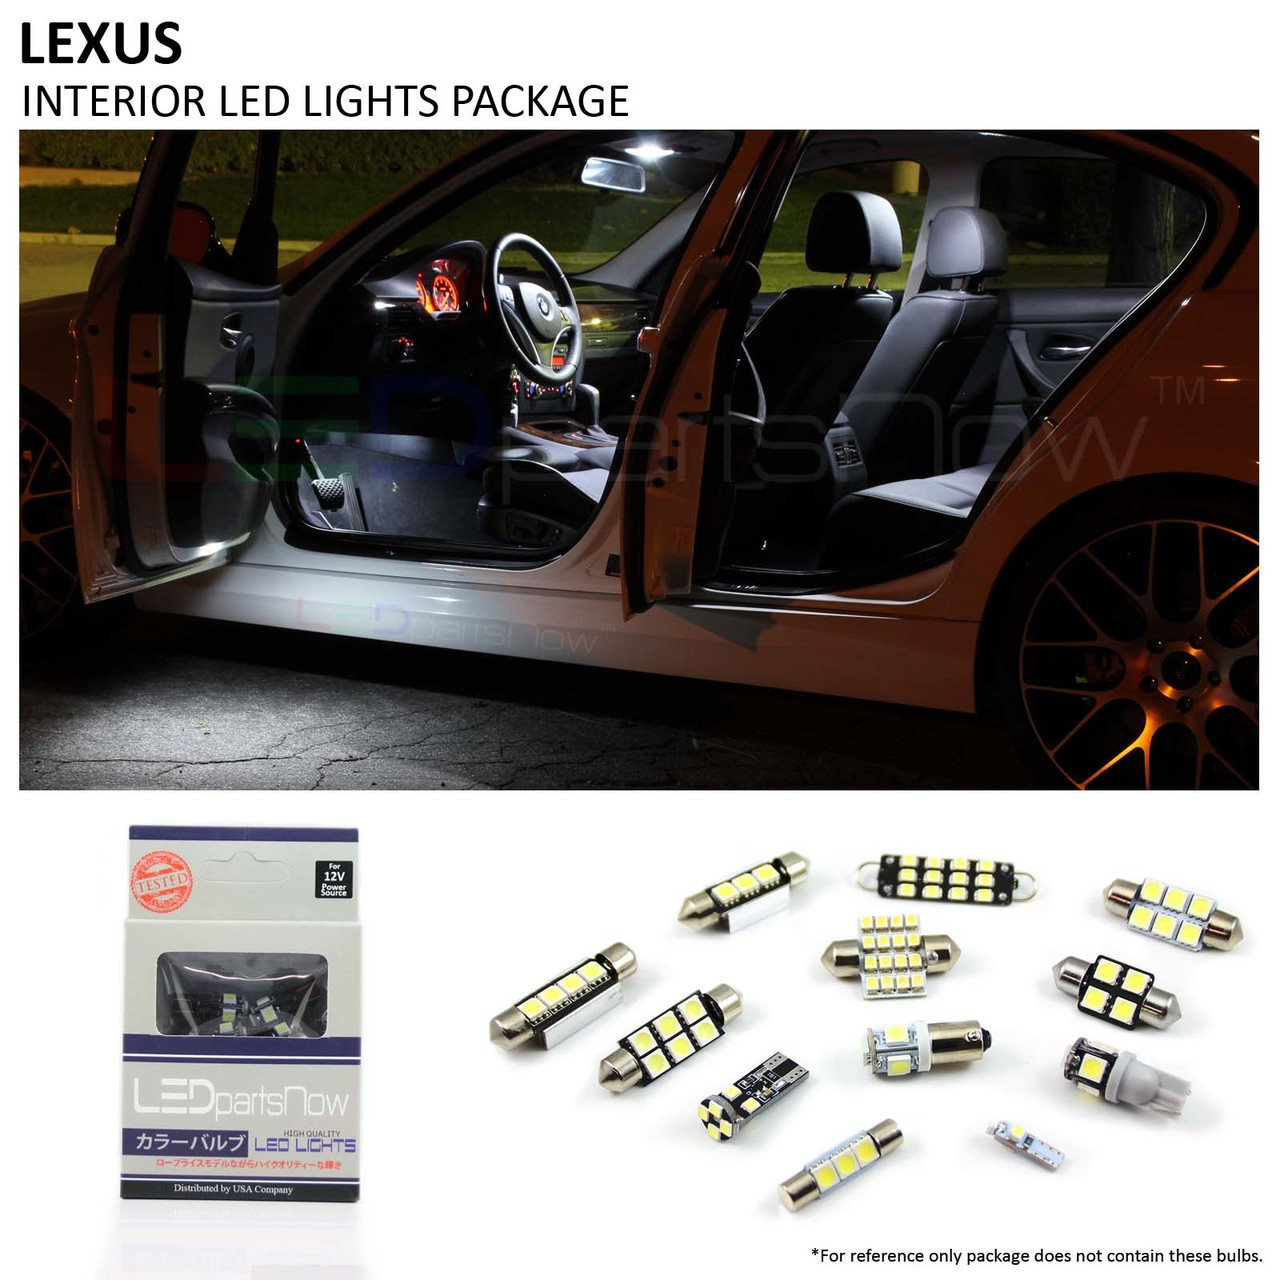 small resolution of 2010 2015 lexus rx interior led lights package image 1 lexus rx 450h wiring diagram